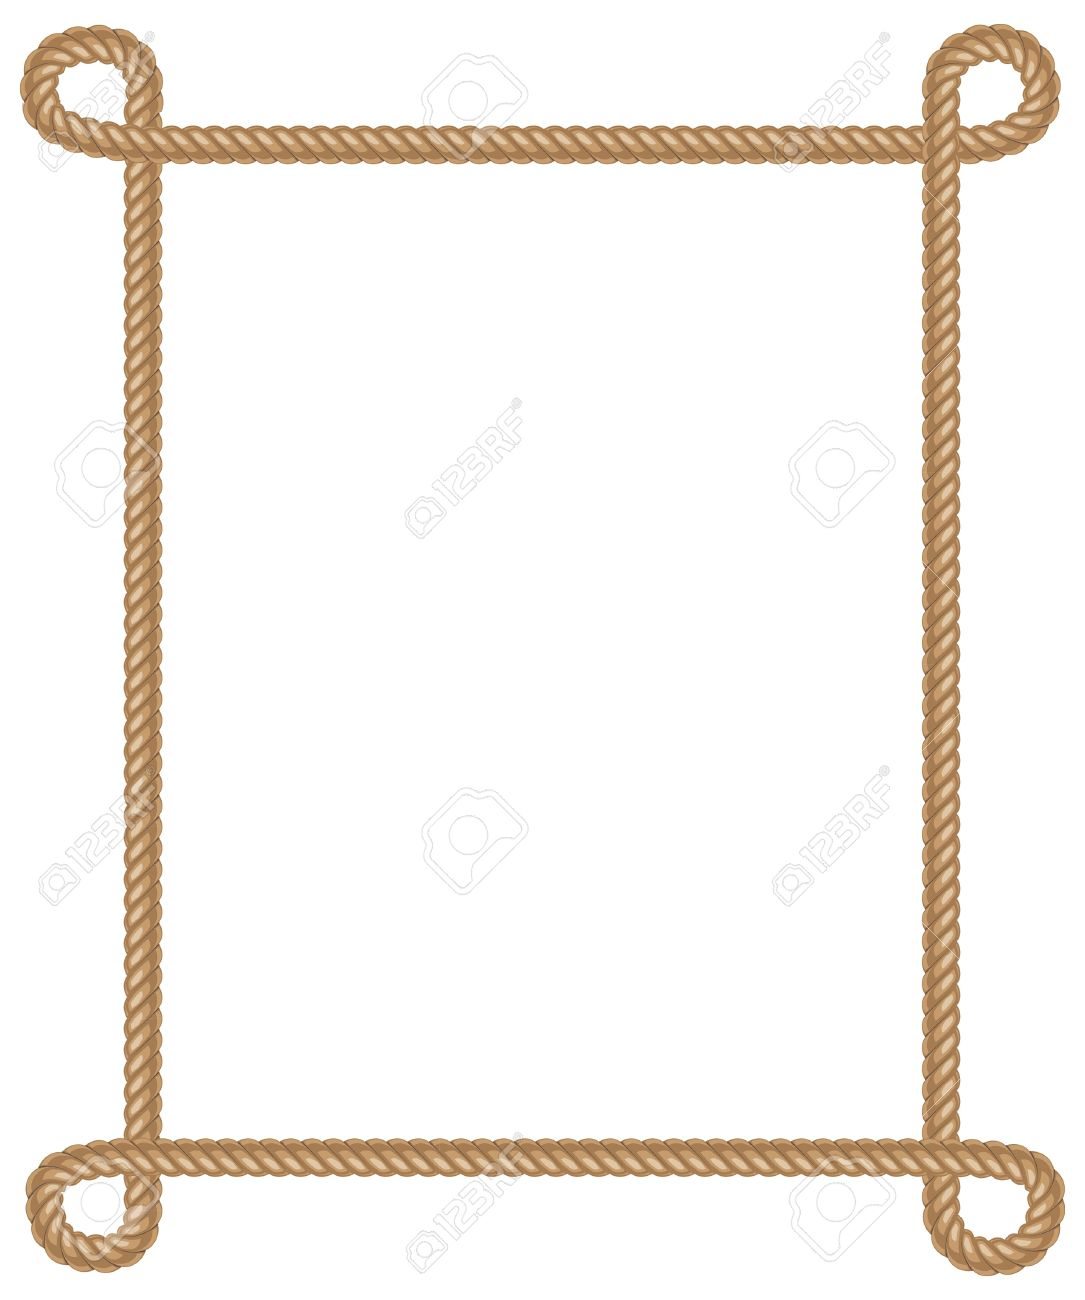 Rope frame silhouette clipart clipground Rope photo frame